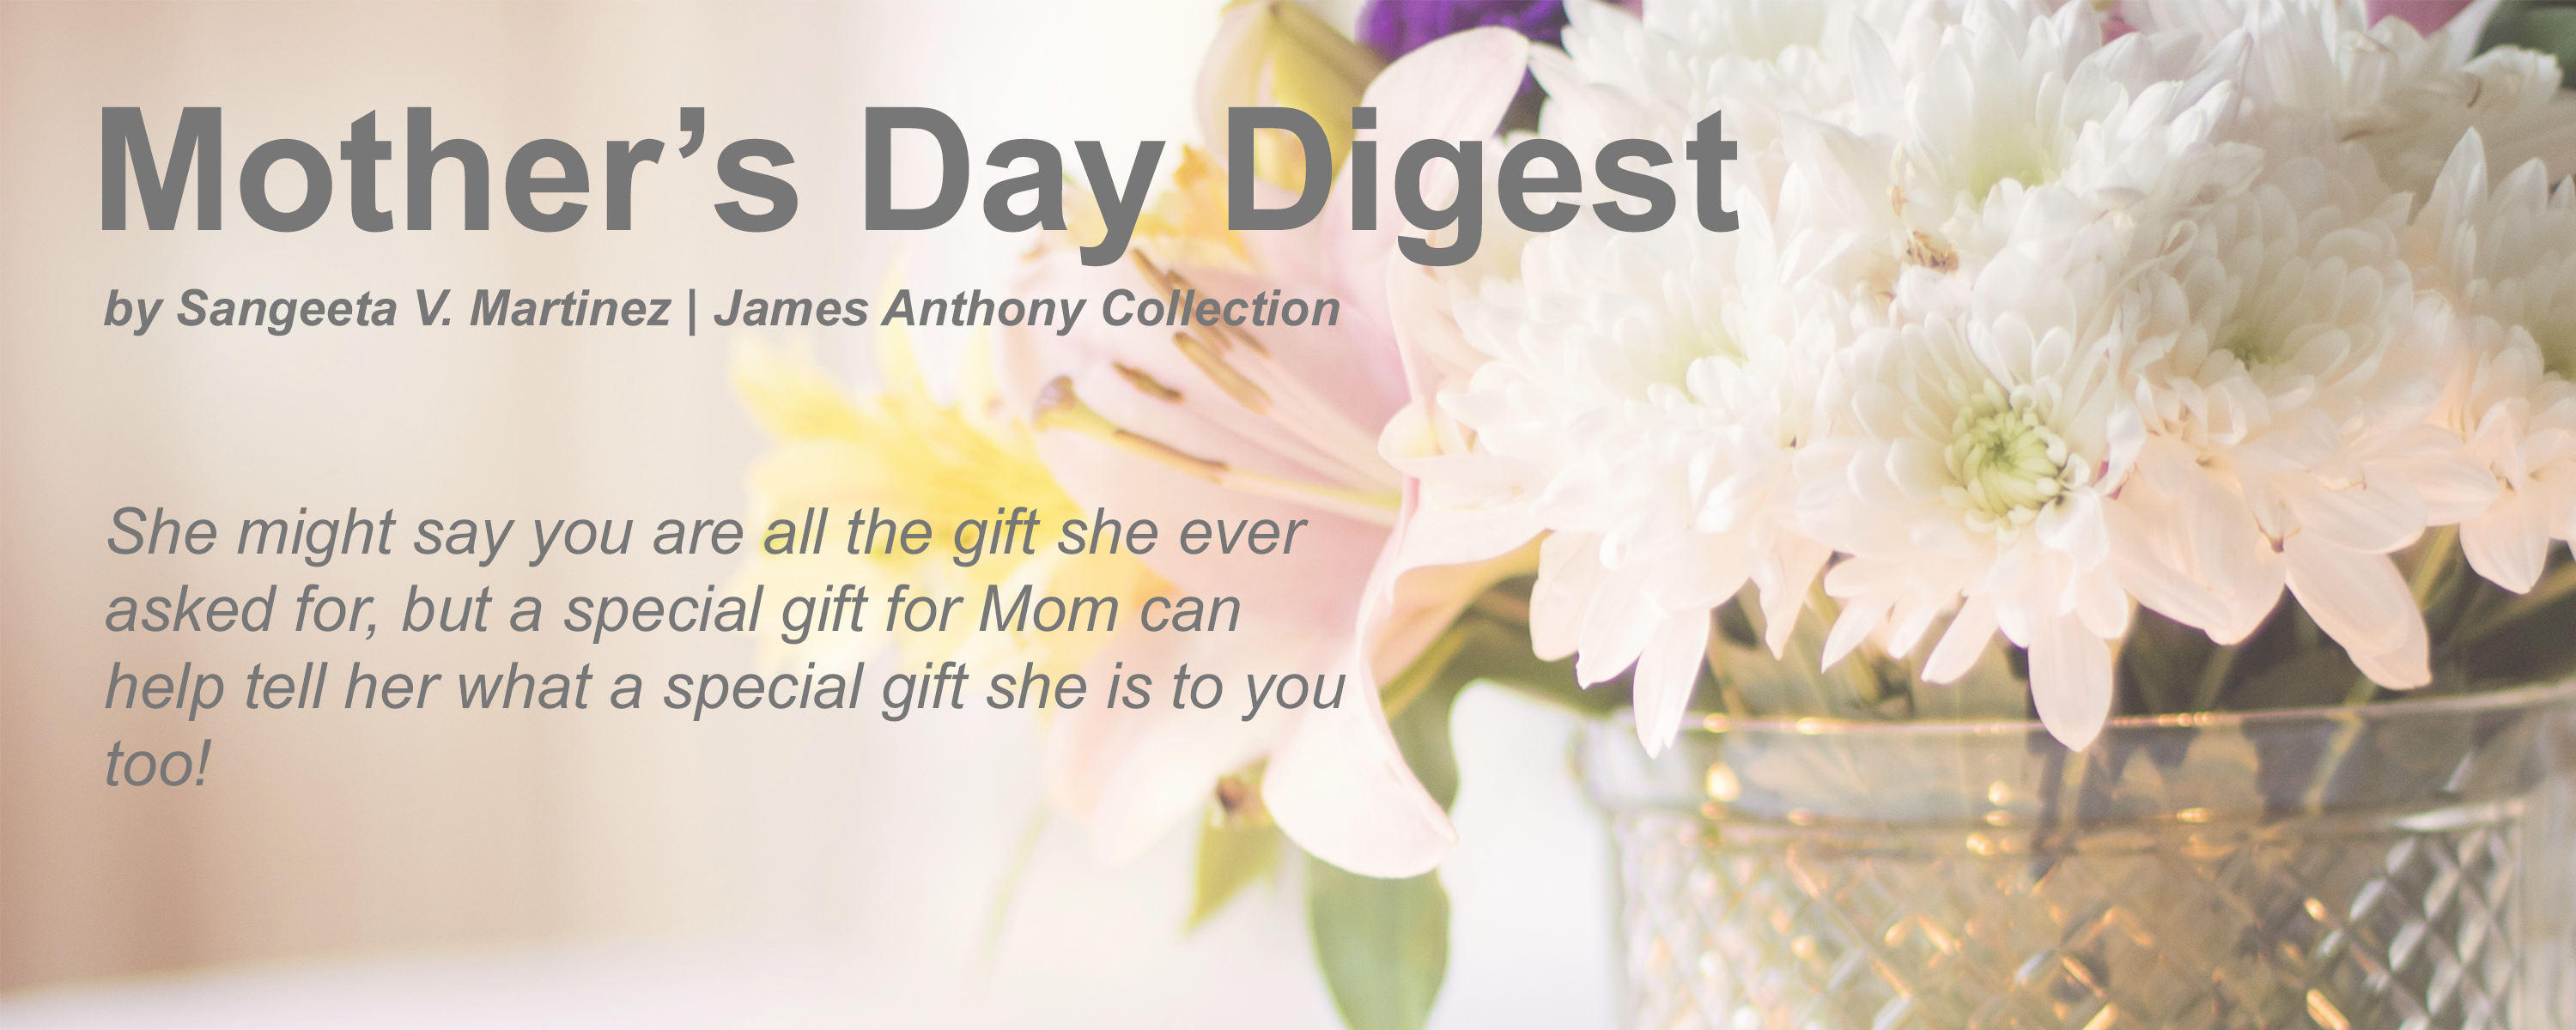 Mother's Day Gift Ideas | James Anthony Collection